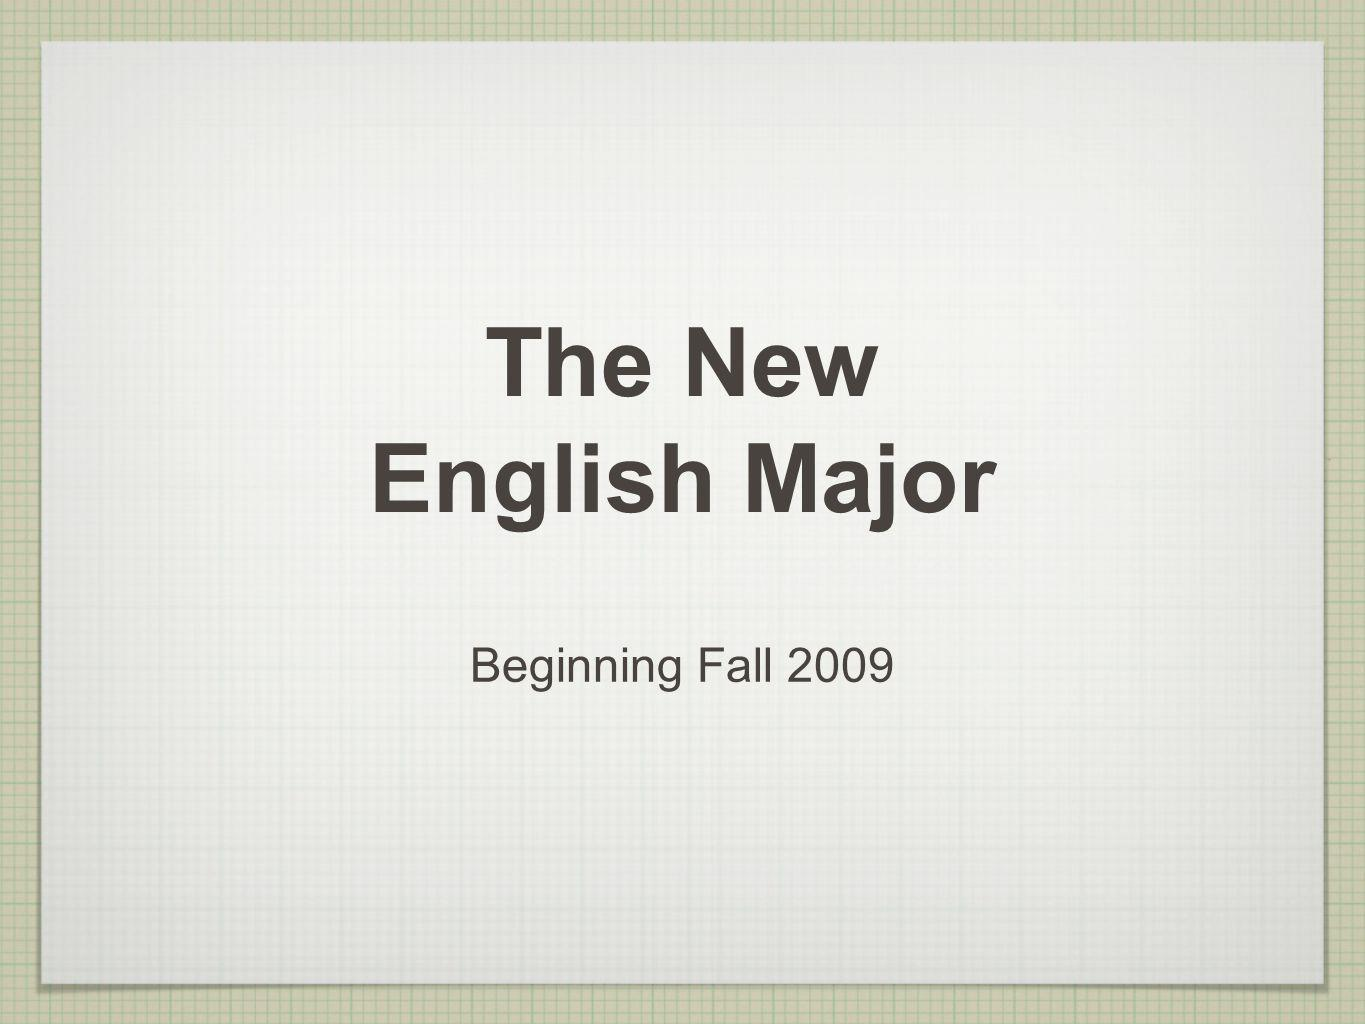 The New English Major Beginning Fall 2009